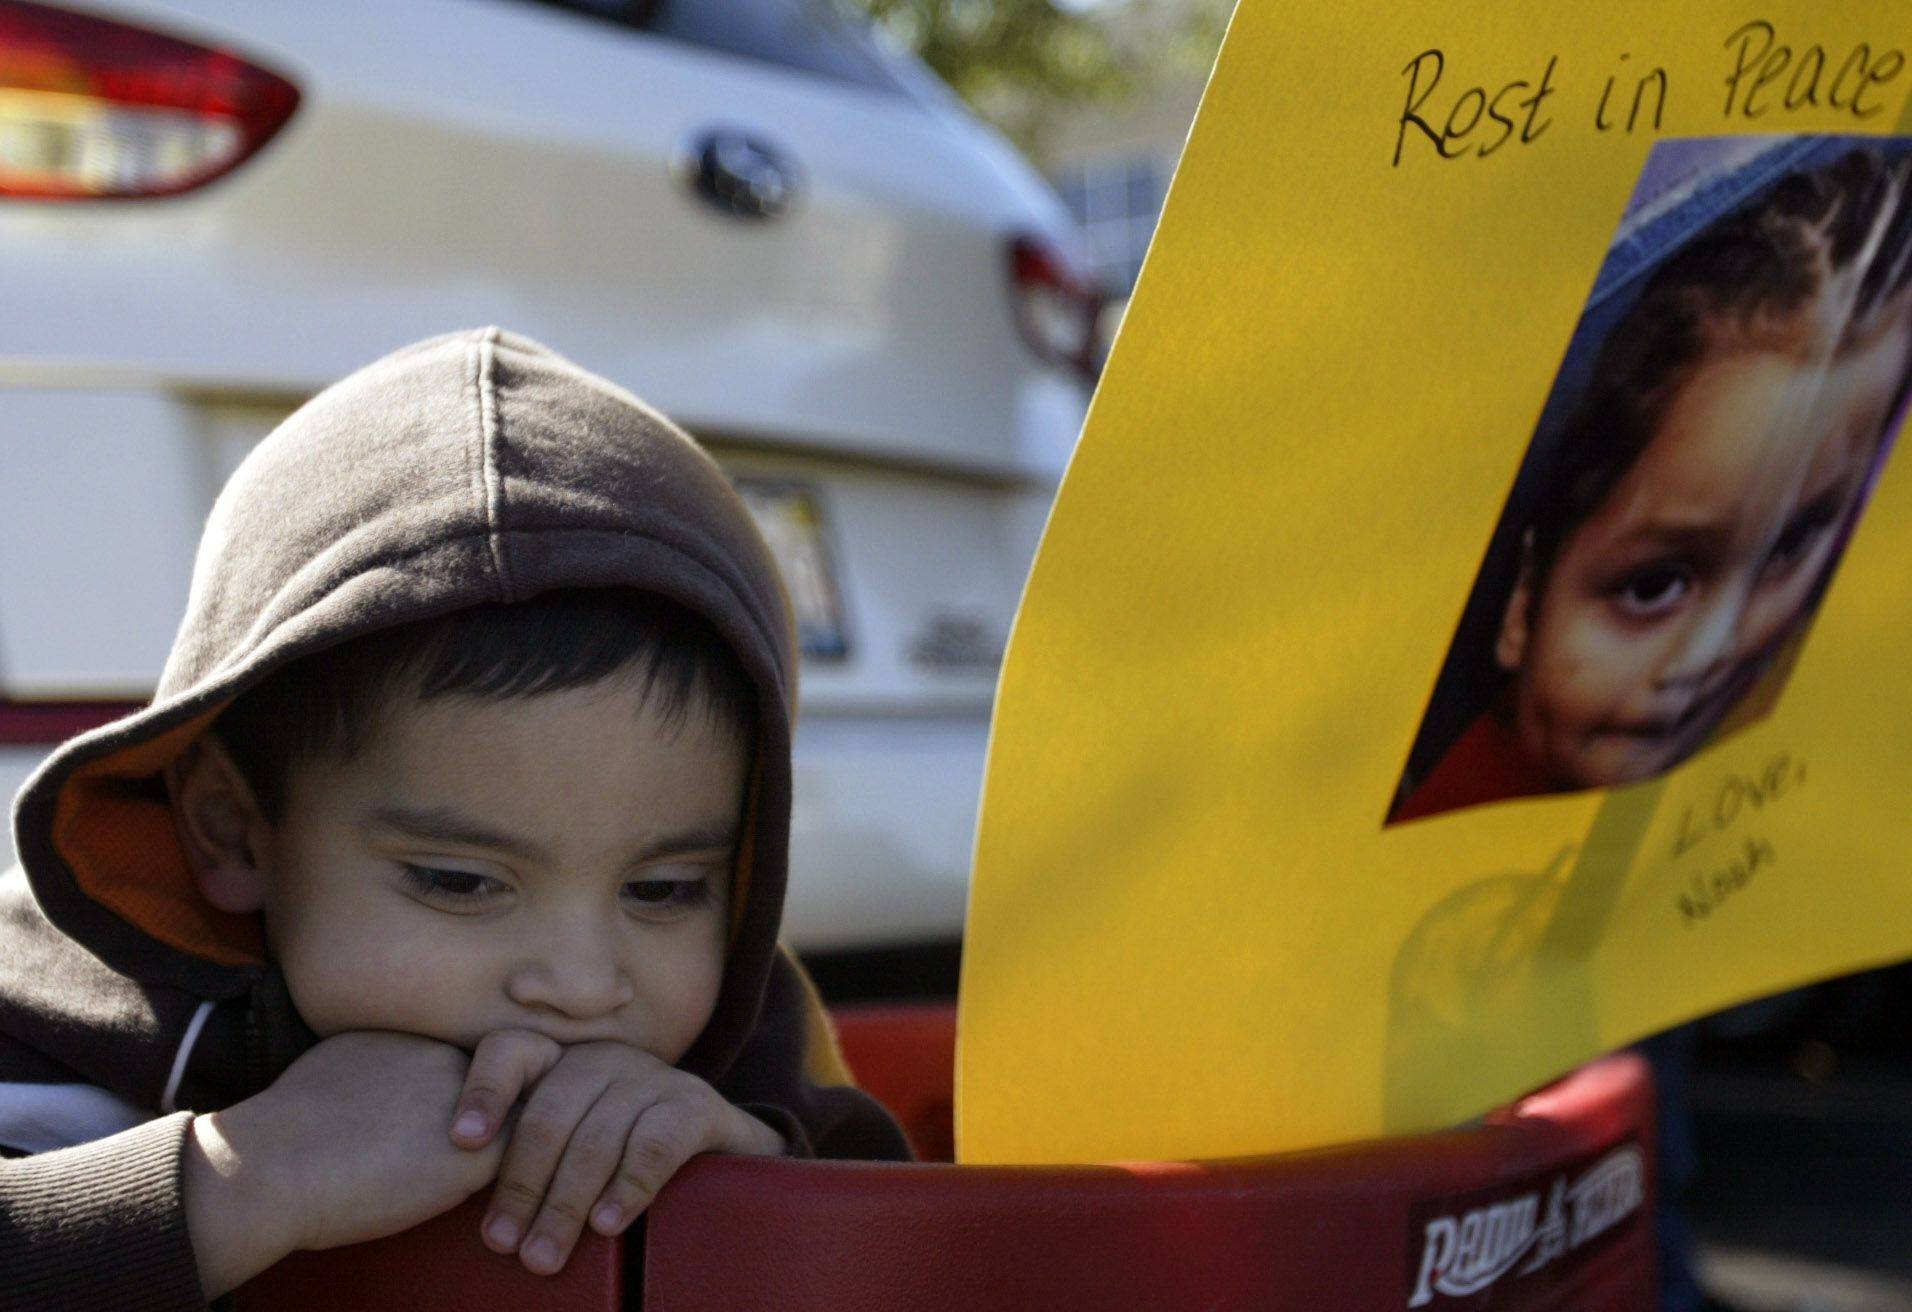 "Noah Arreguin, 4, of Elgin, sits in a wagon before marching to protest gang violence in honor of Eric Galarza Jr. who was recently killed. The Arreguin family are friends with the Galarza family. ""We should stop this violence, no one should die that way,"" 11-year-old Delaney Arreguin said."